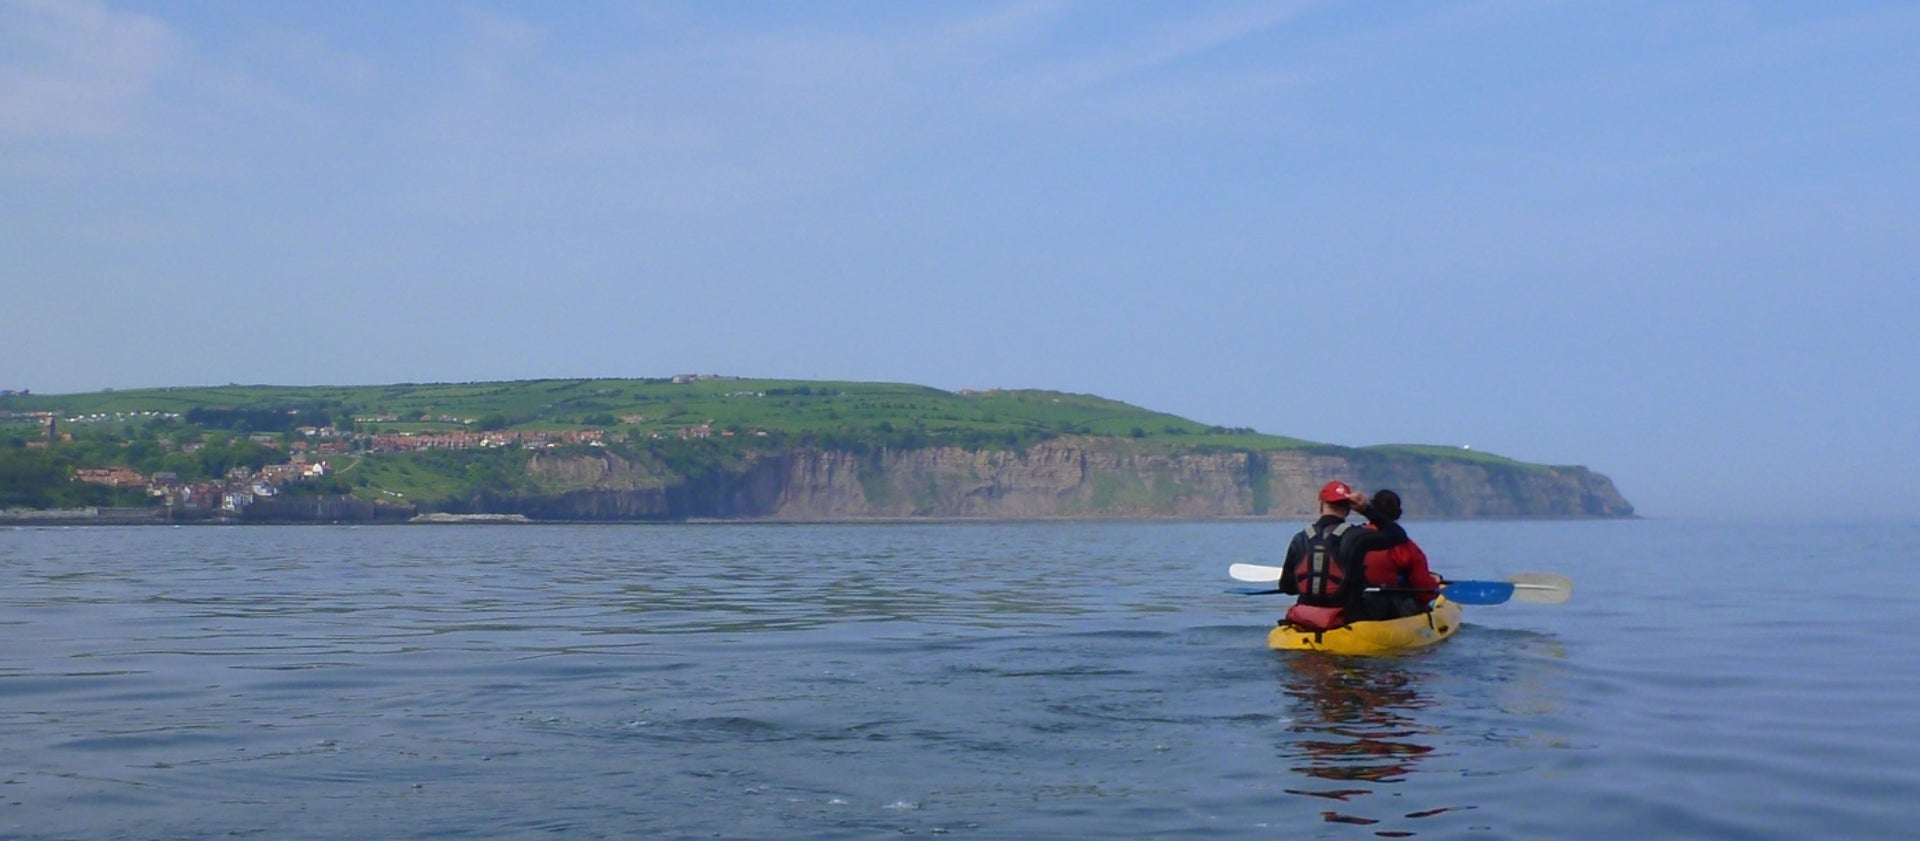 Watersports on the Yorkshire Coast | National TrustVisit our Facebook pageVisit our Twitter